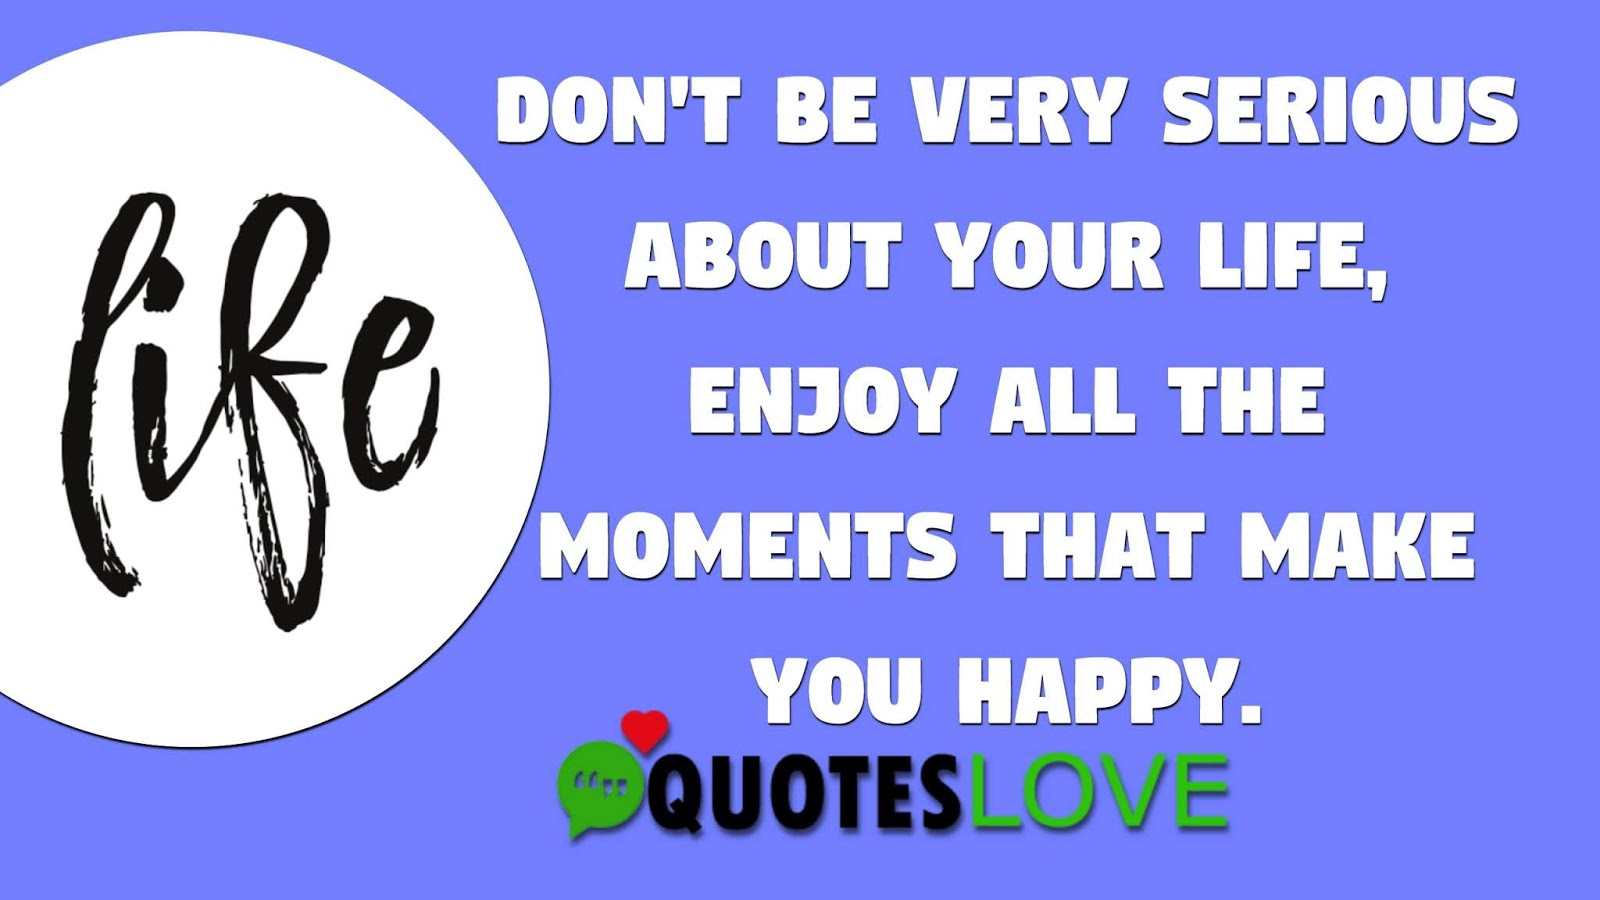 Don't be very serious about your life, Enjoy all the moments that make you happy.